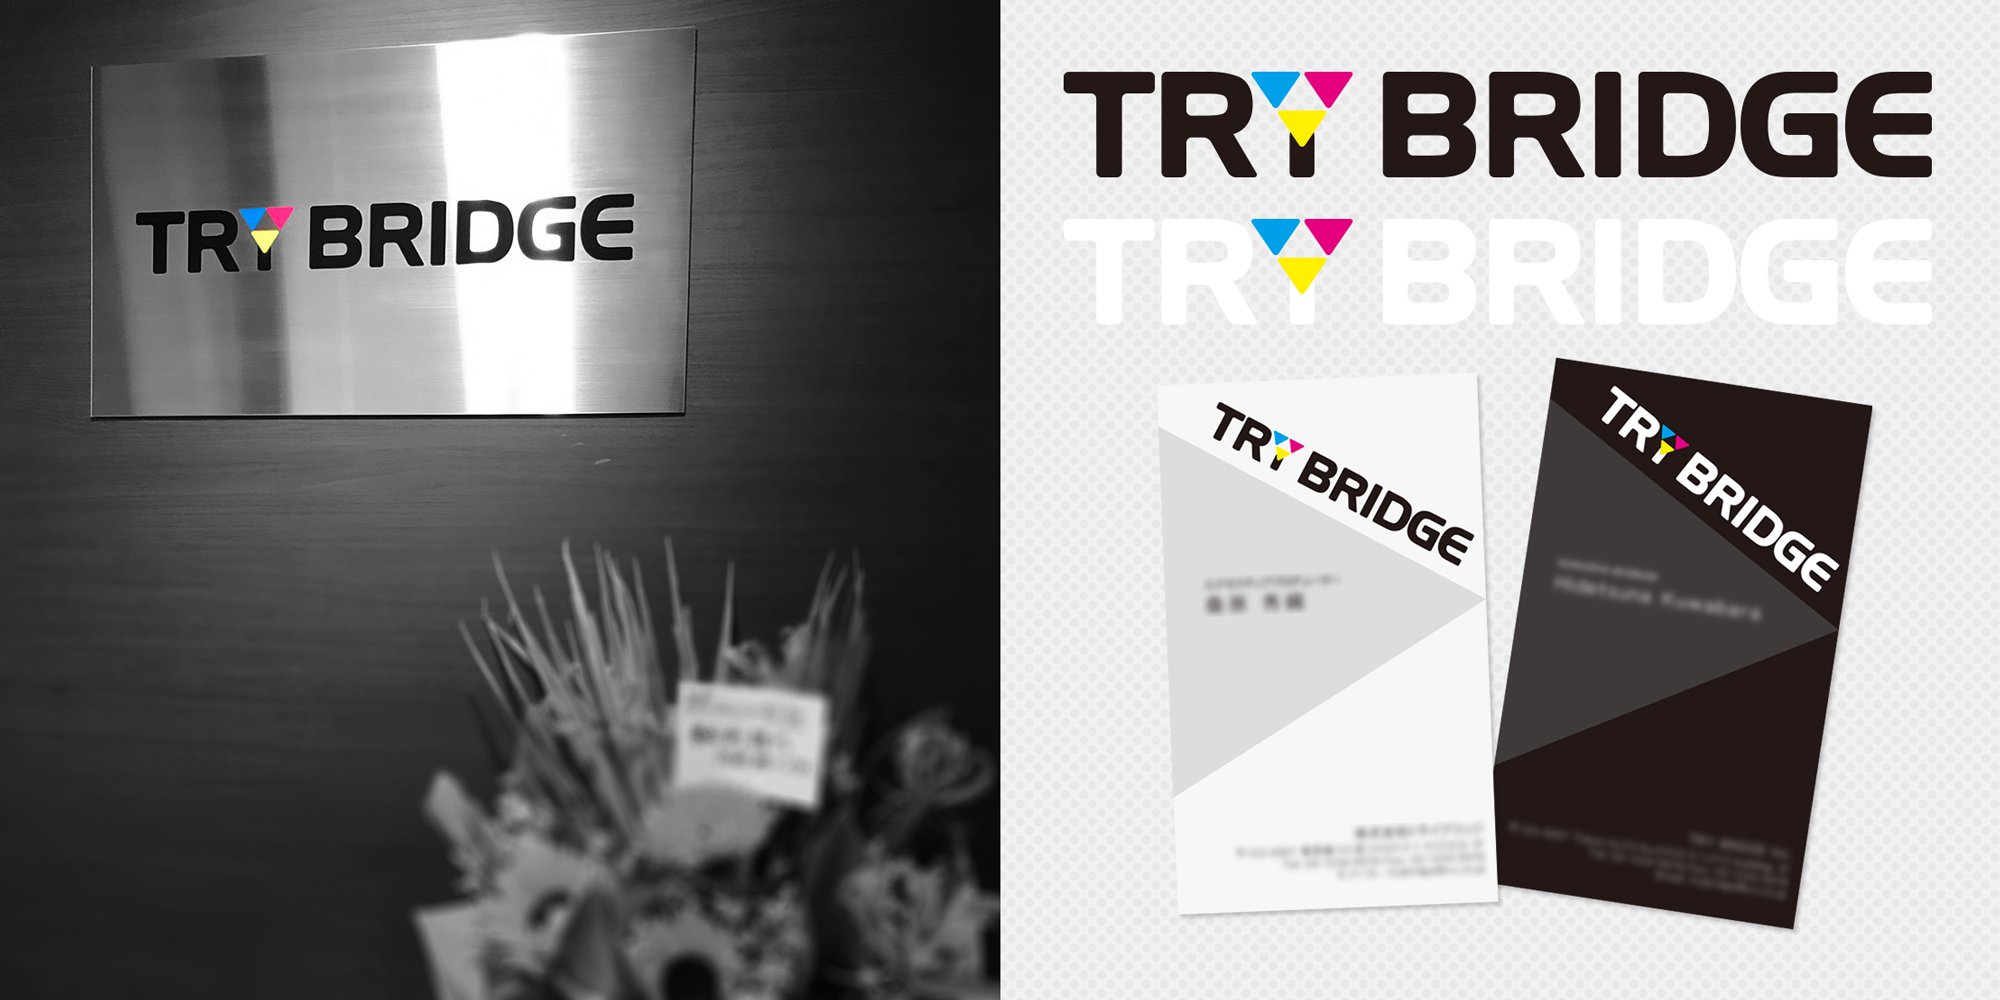 TRY BRIDGE